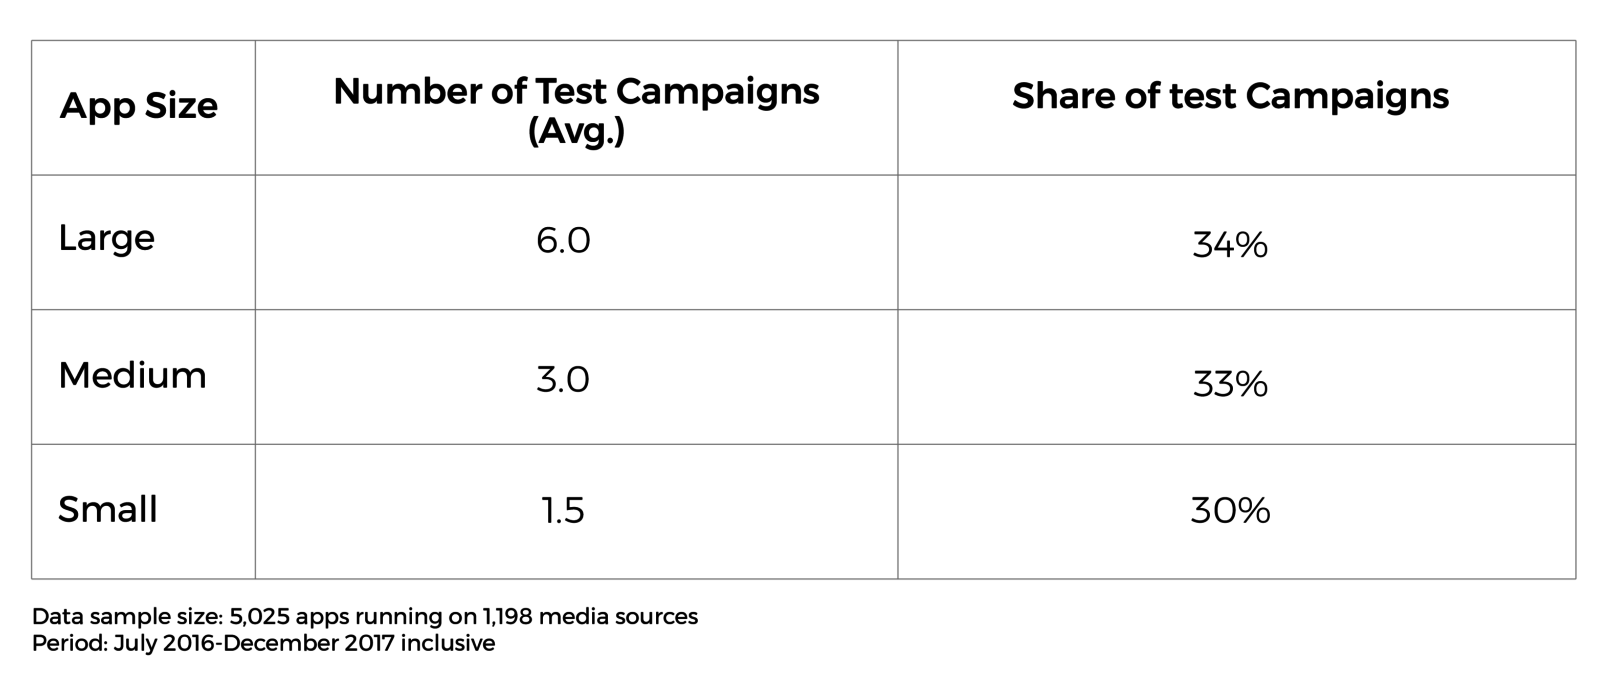 Table: app size, number of test campaigns, share of test campaigns